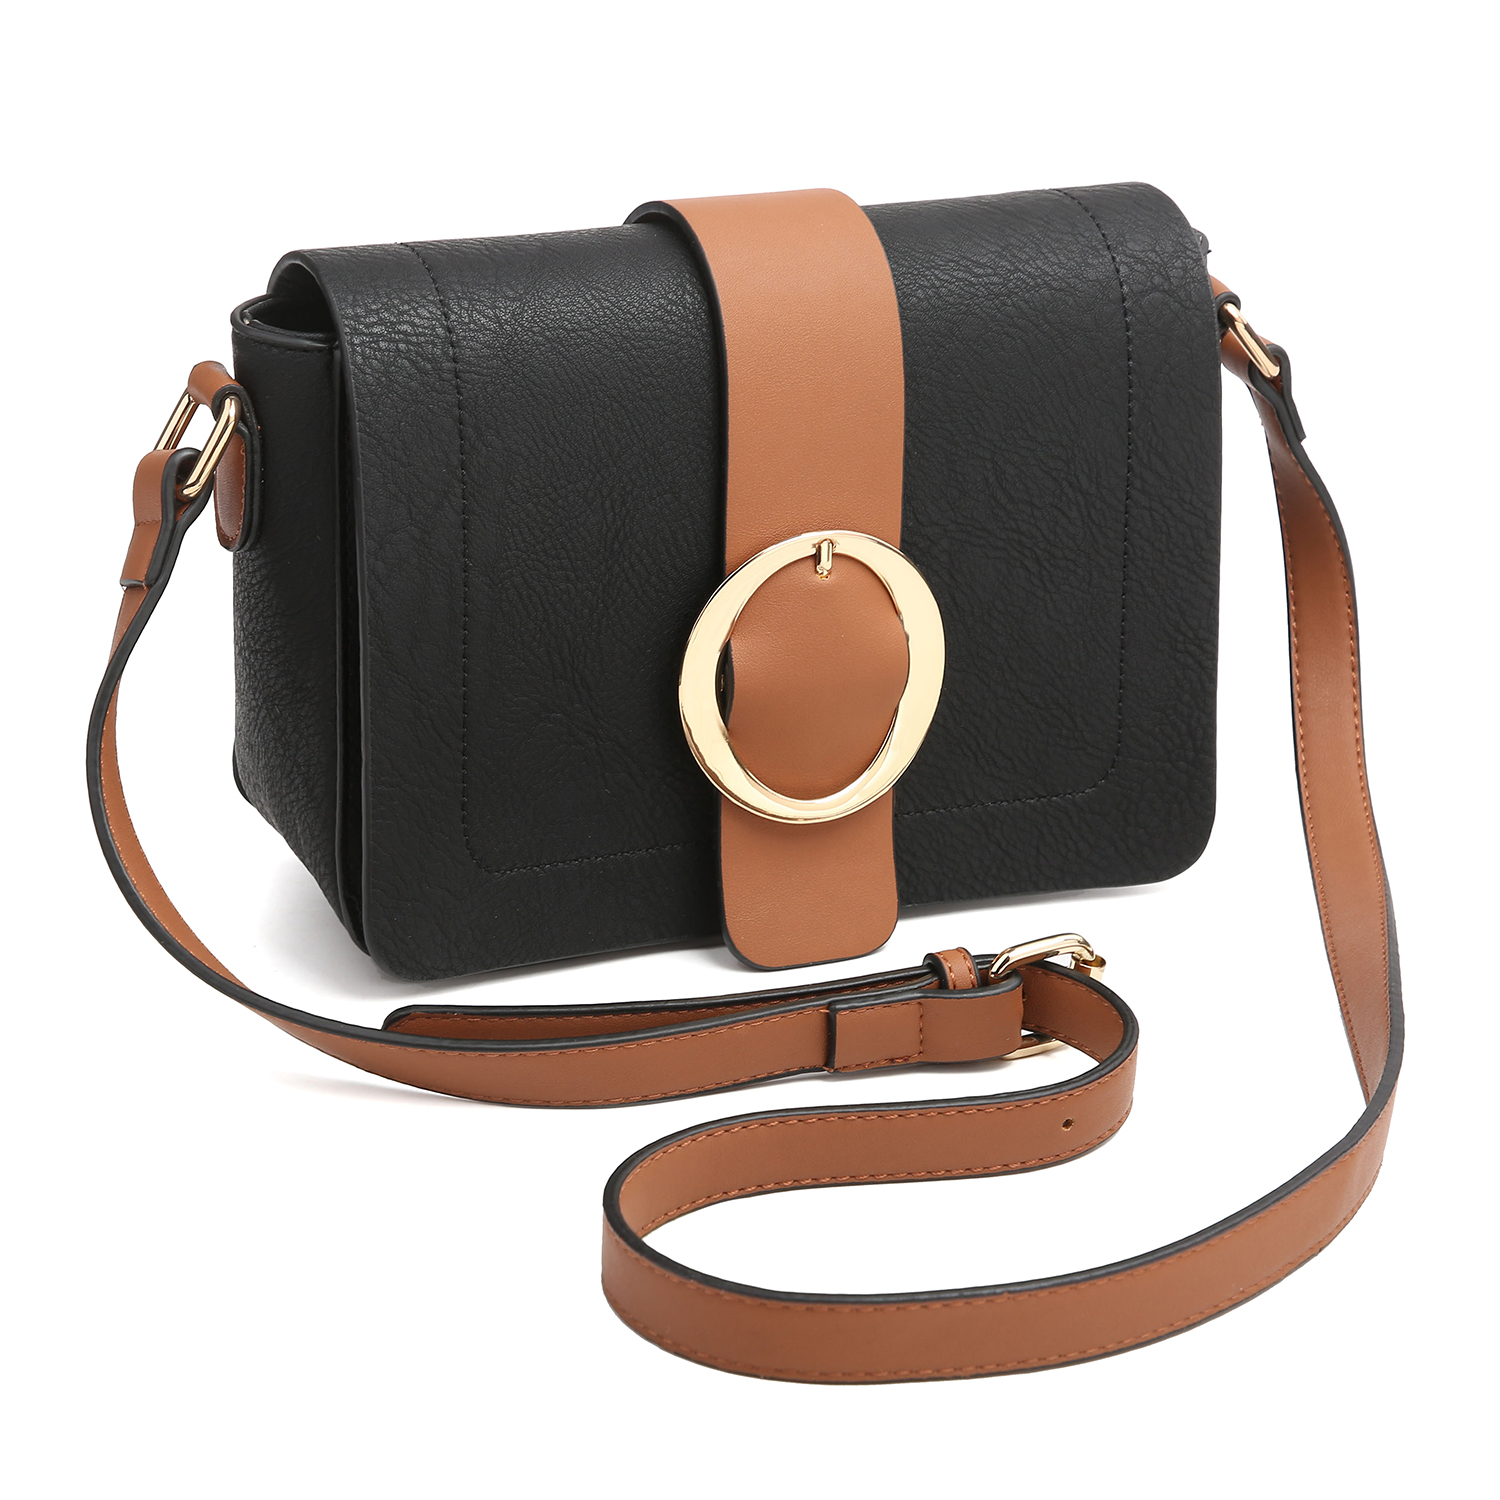 Front Flap Snap Closure Messenger Bag with Decorative Round Buckle Design